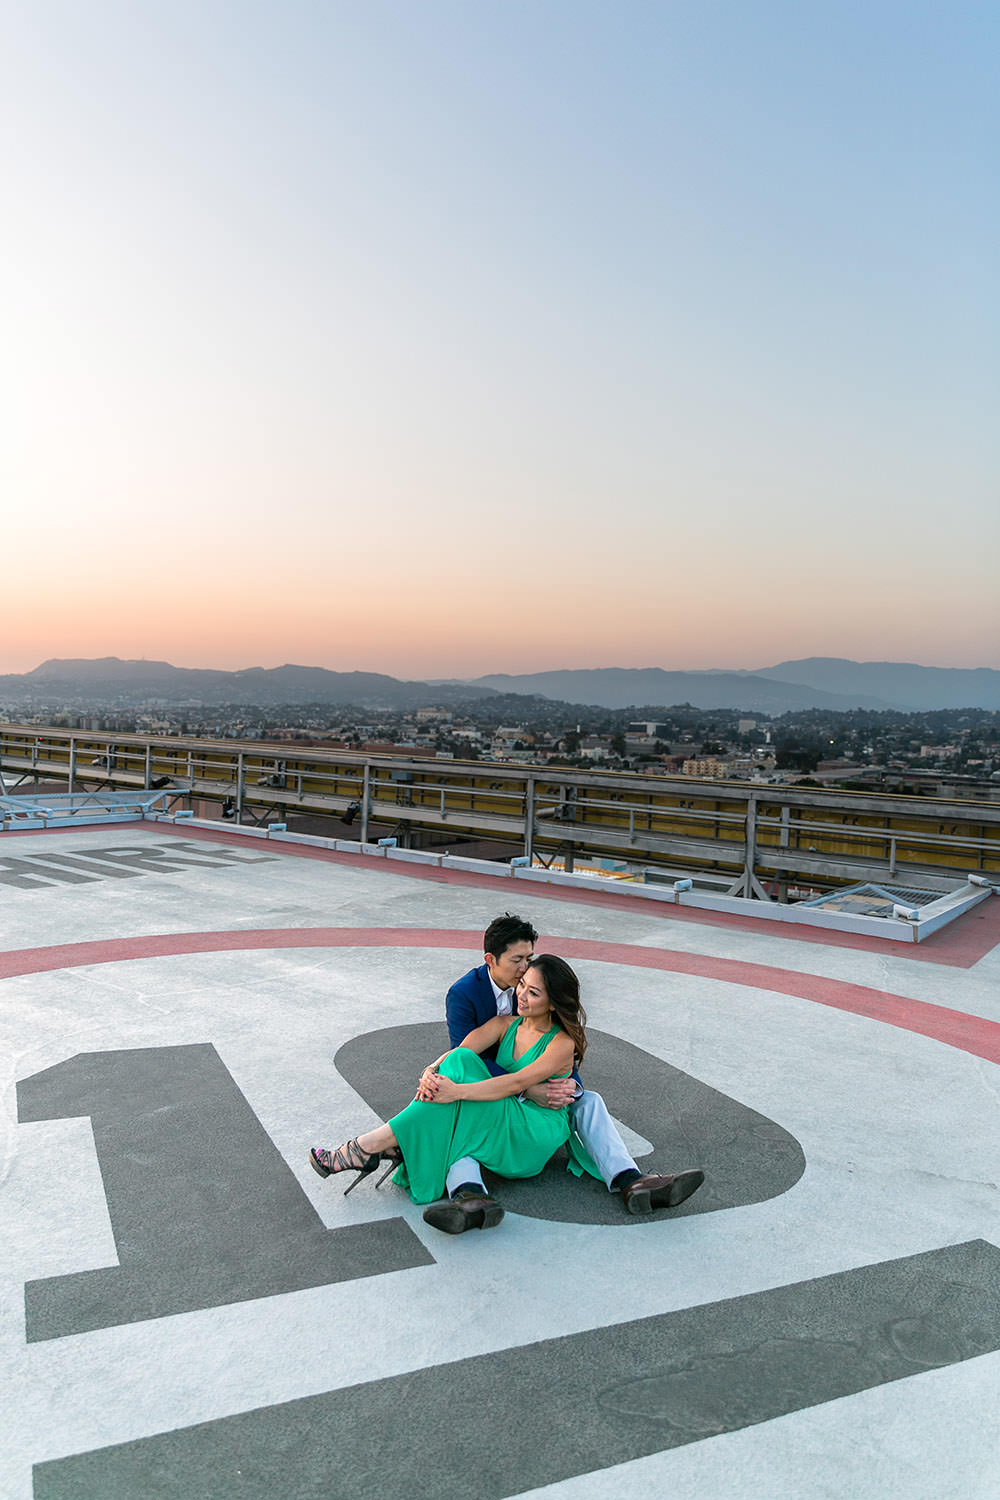 Engagement session at TENTEN Wilshire helicopter pad in Downtown Los Angeles, CA